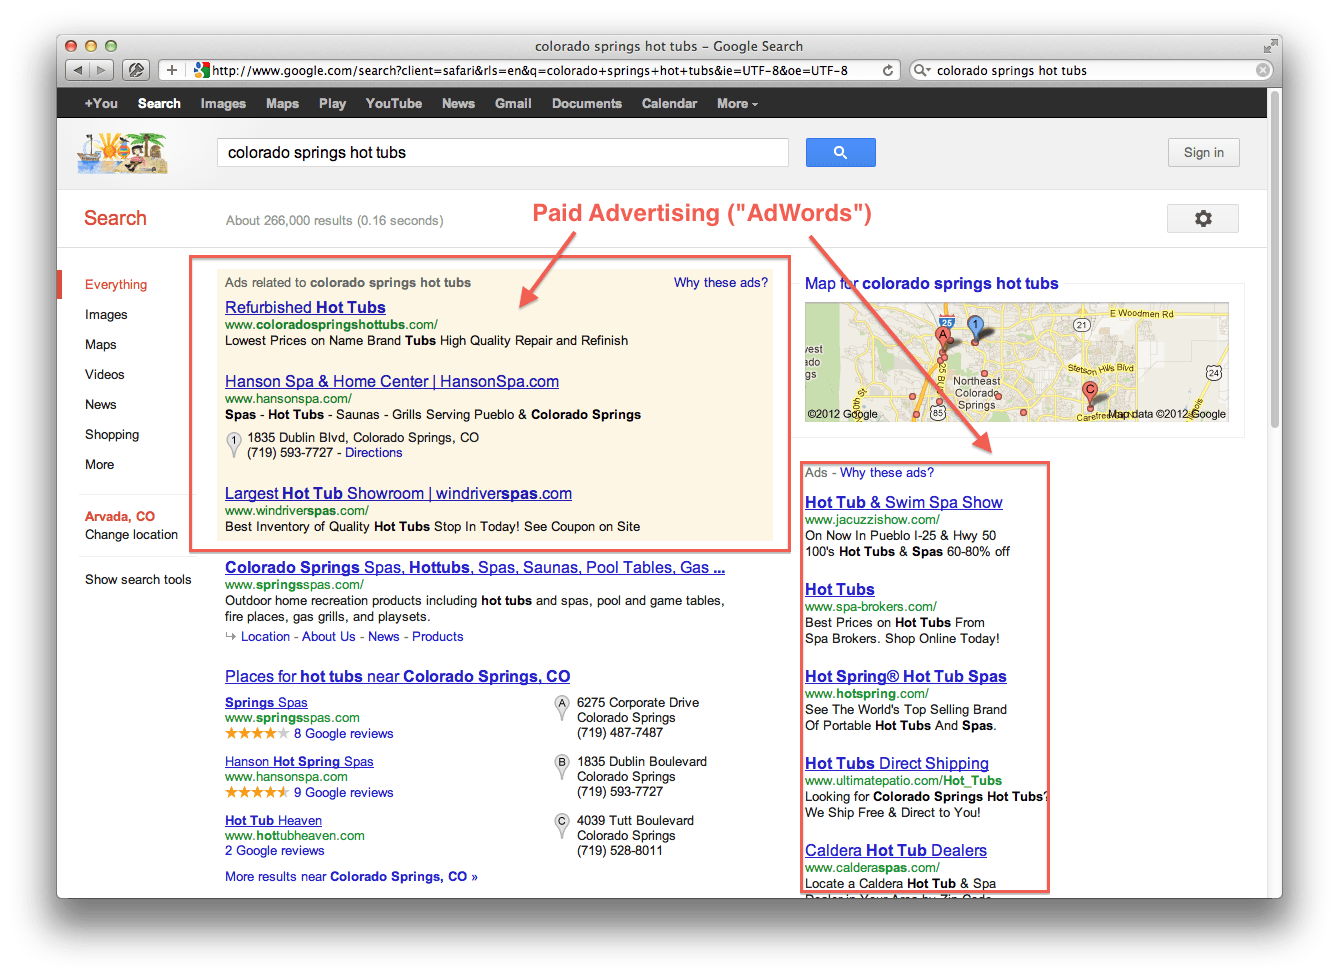 Paid Advertising on Google